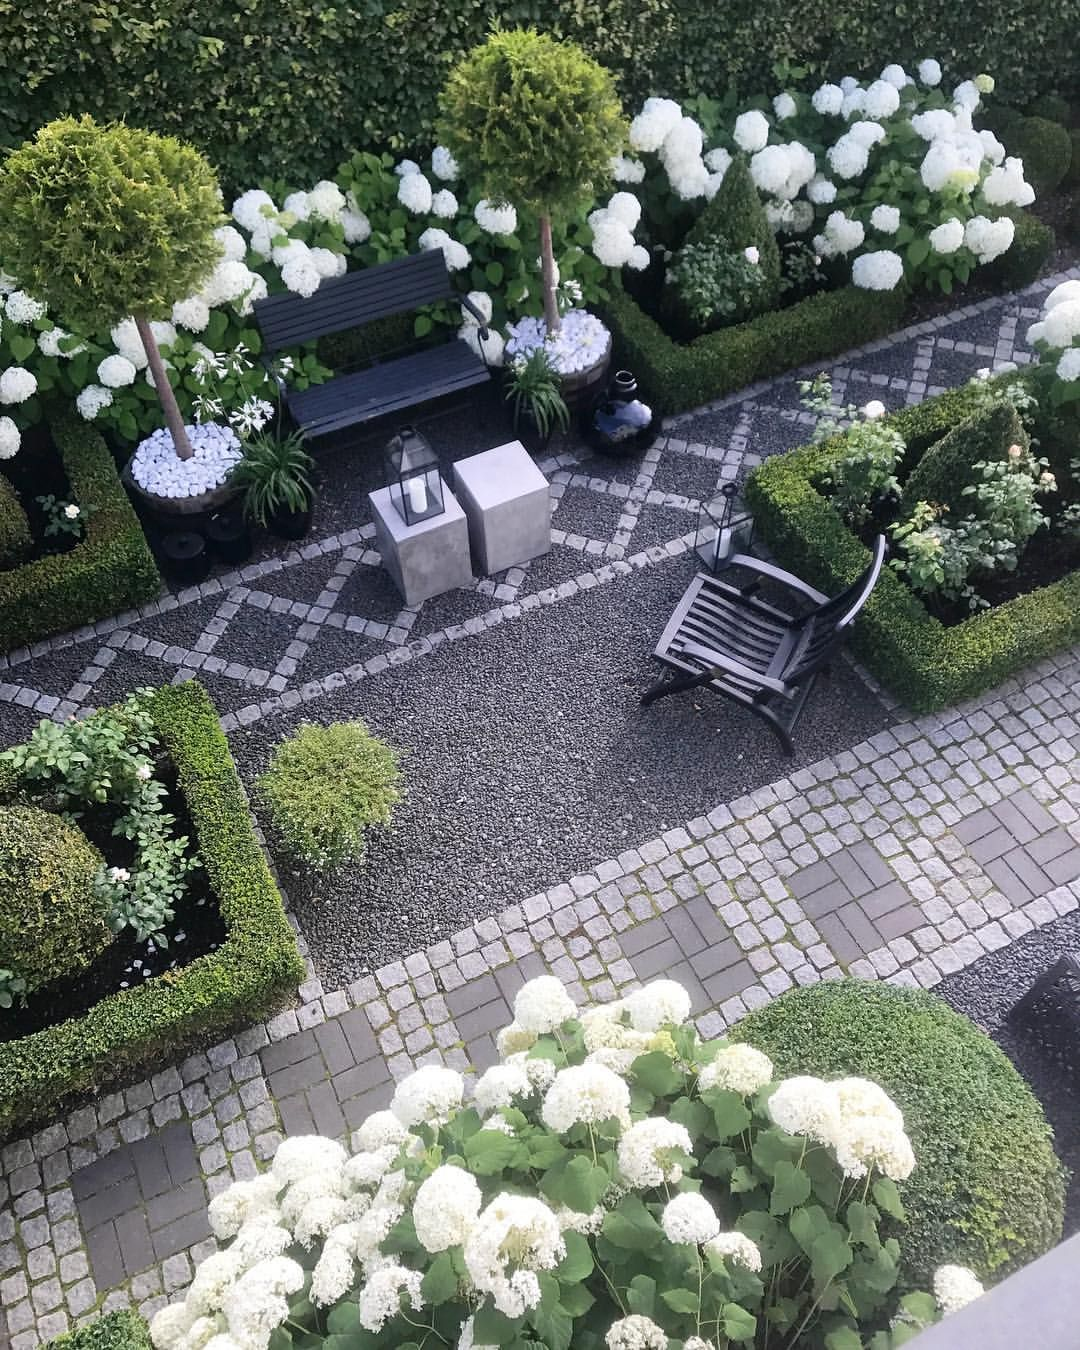 Garden Ideas Designs And Inspiration: Patio Inspiration With Cobblestone, Gravel And White